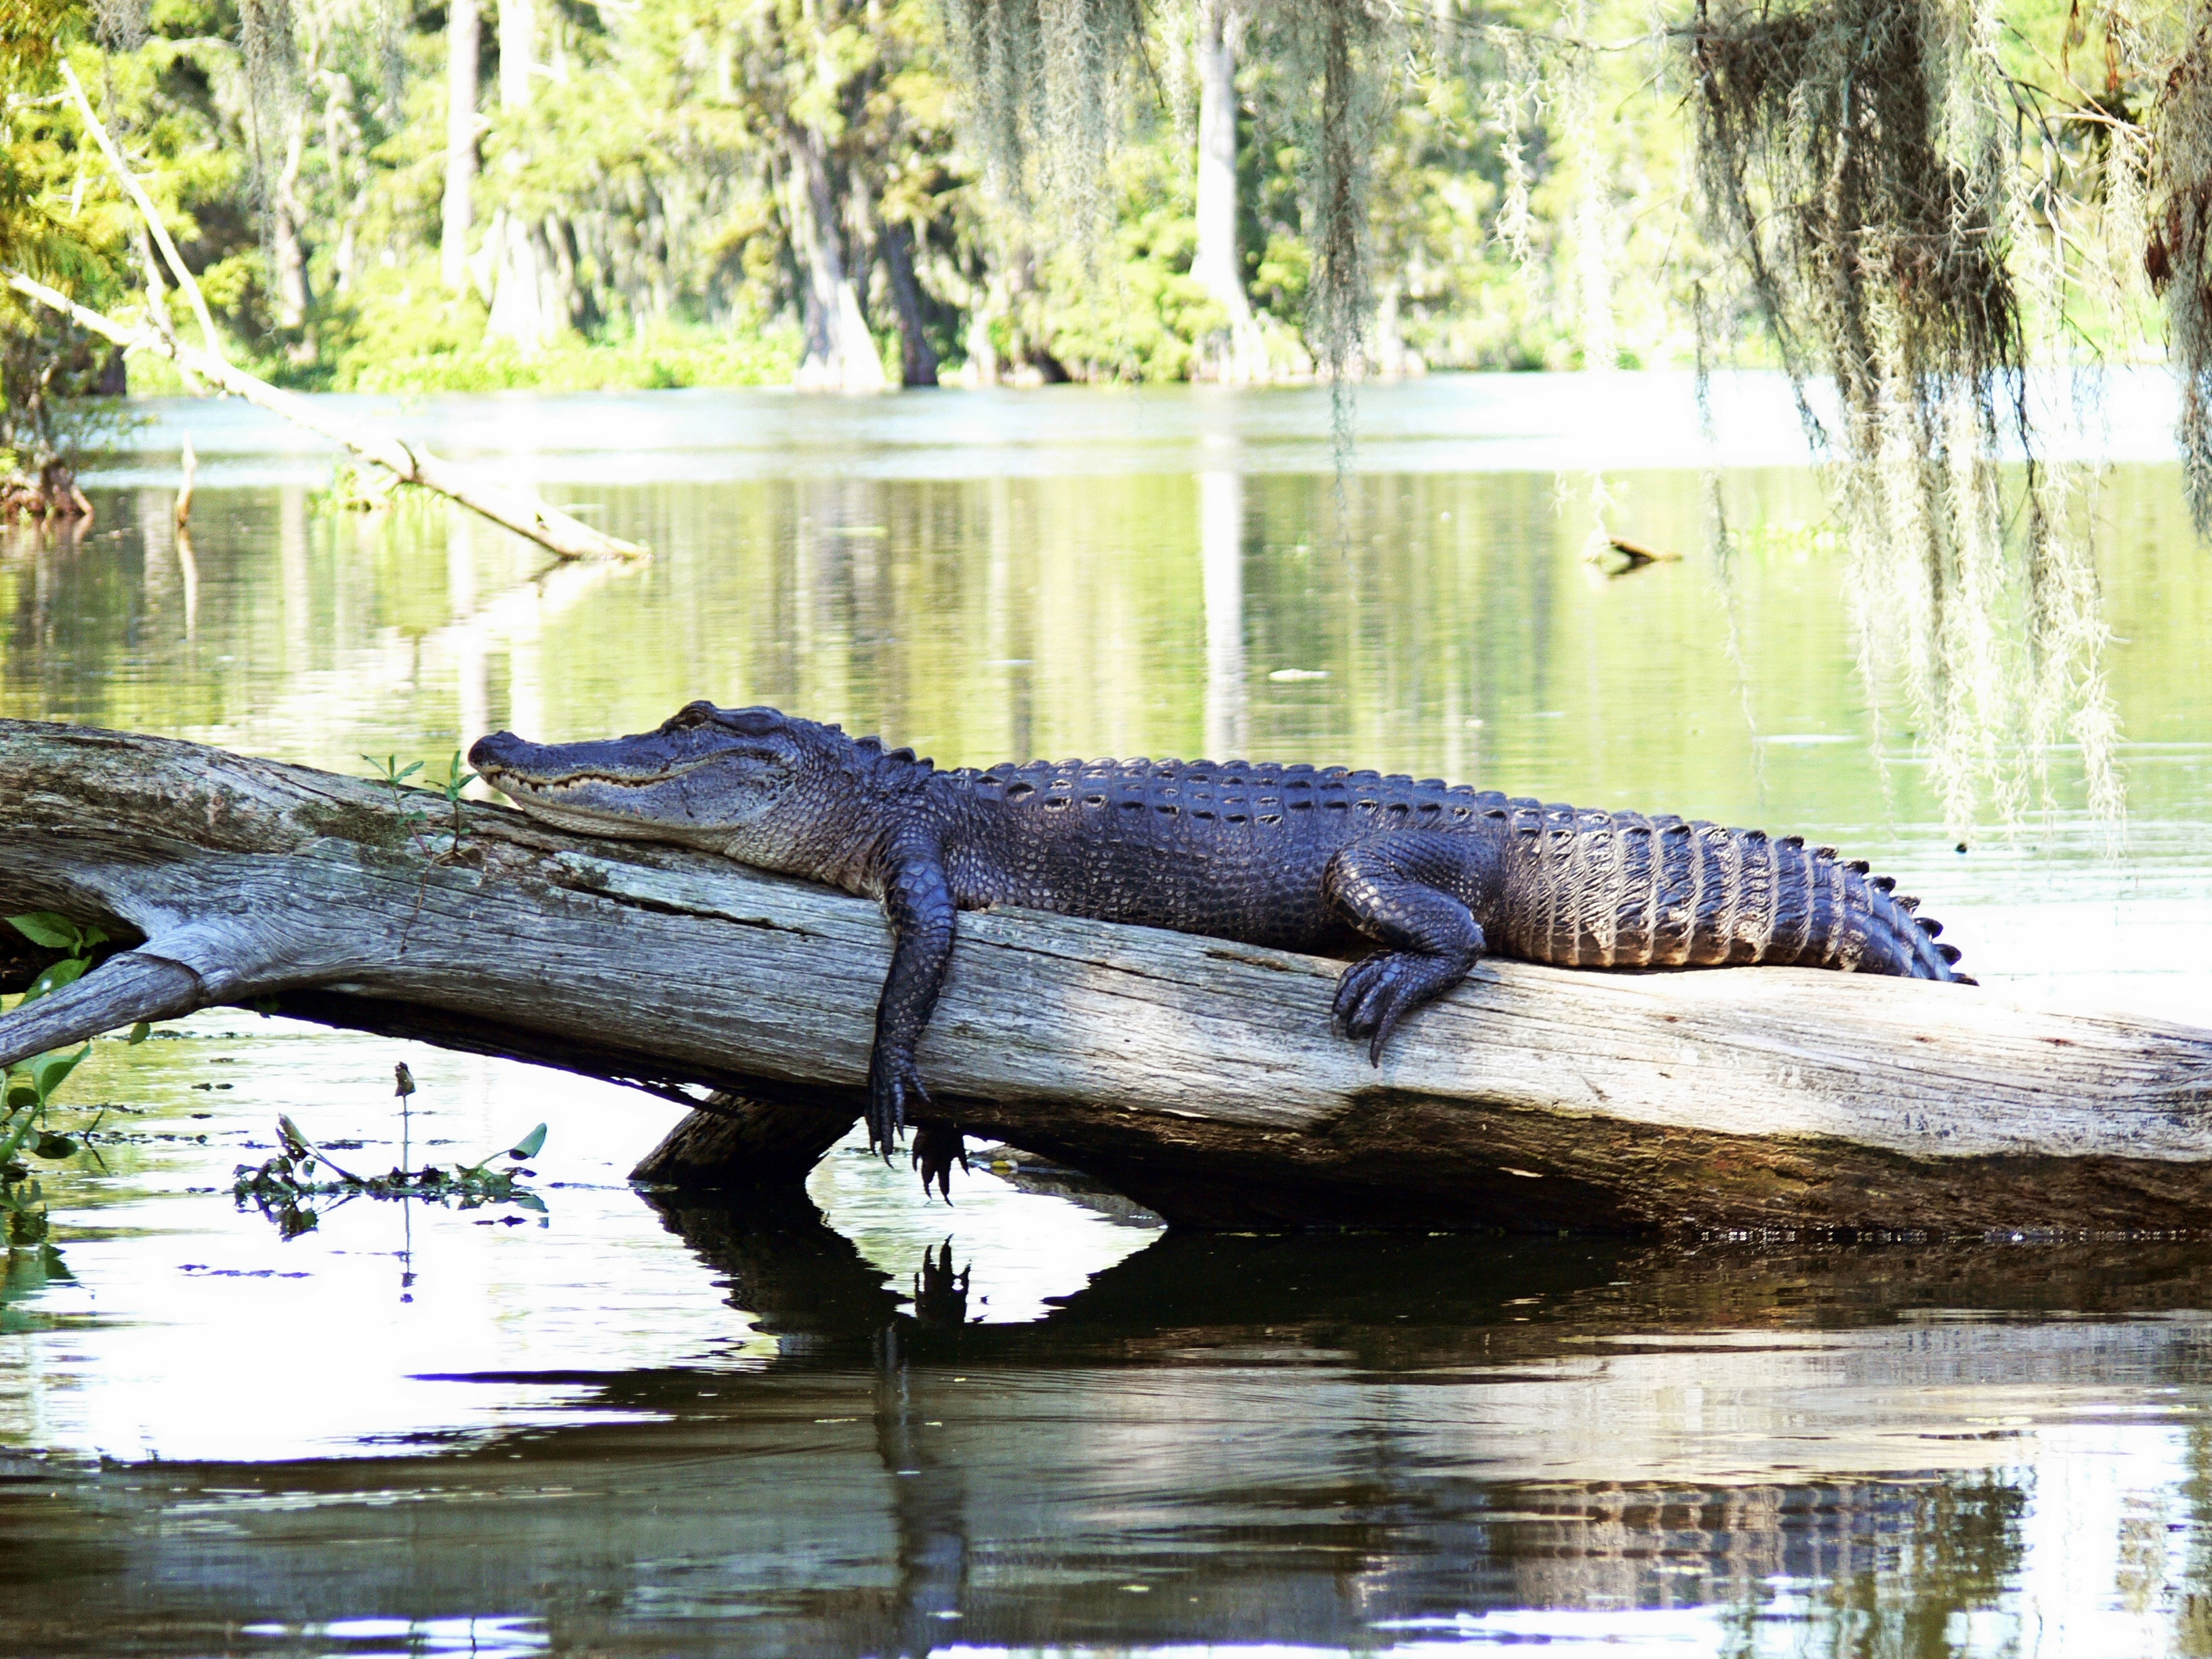 Alligator lounging on tree in a swamp